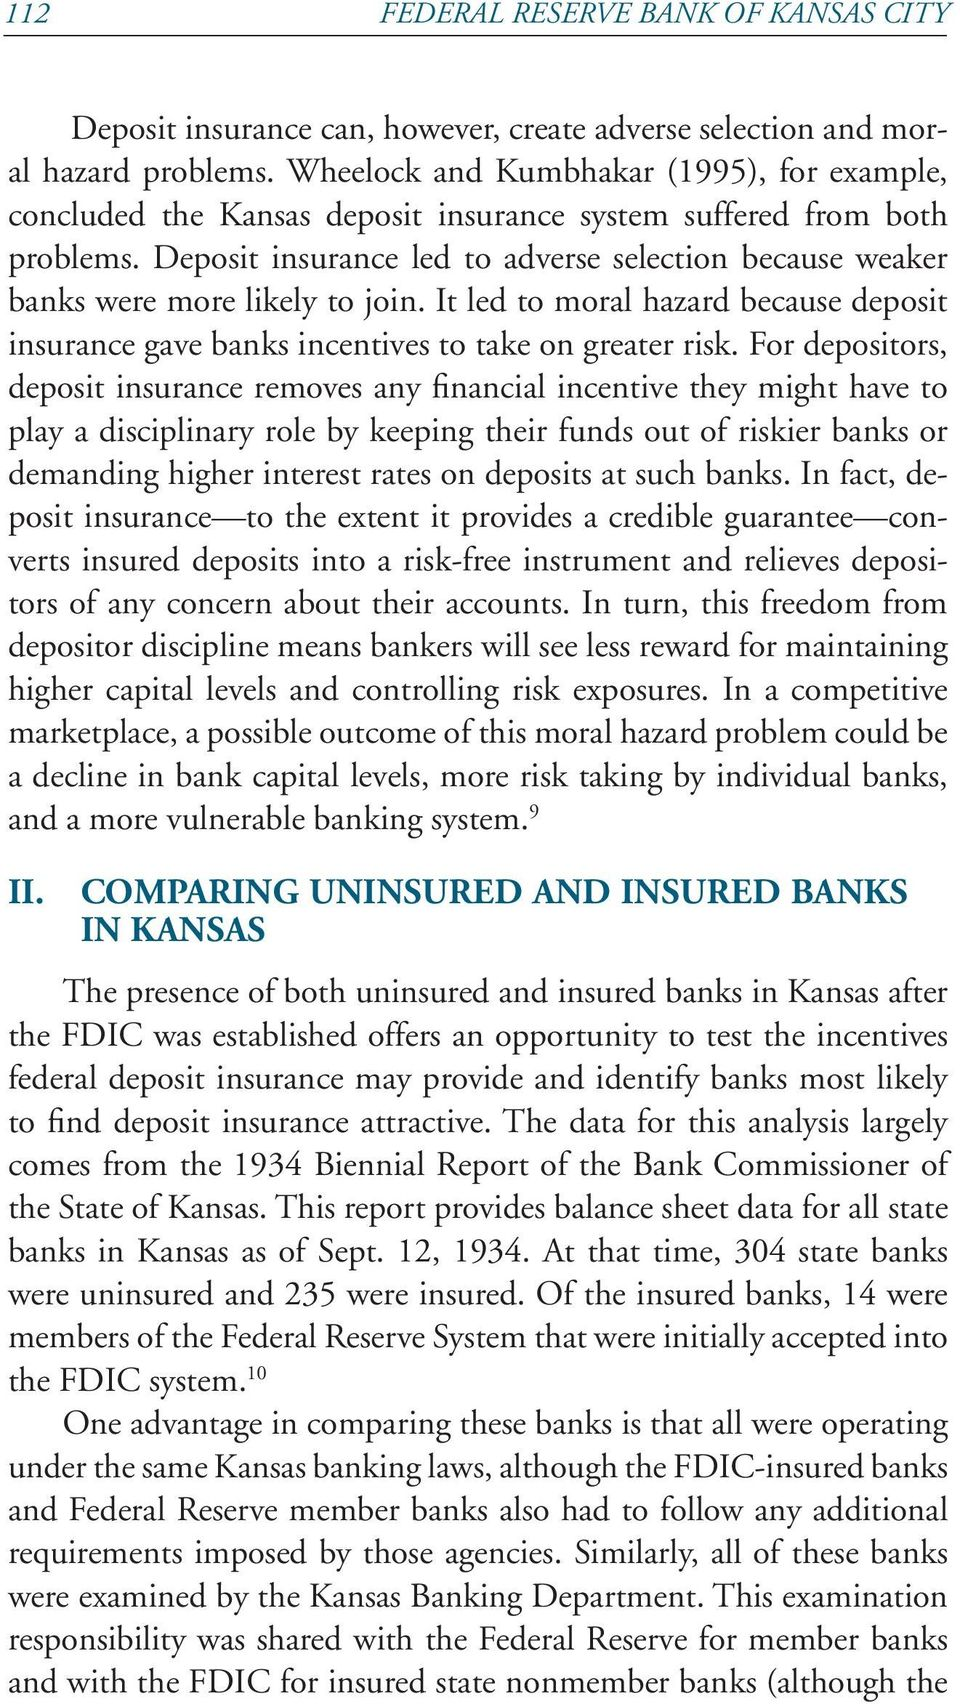 Deposit insurance led to adverse selection because weaker banks were more likely to join. It led to moral hazard because deposit insurance gave banks incentives to take on greater risk.